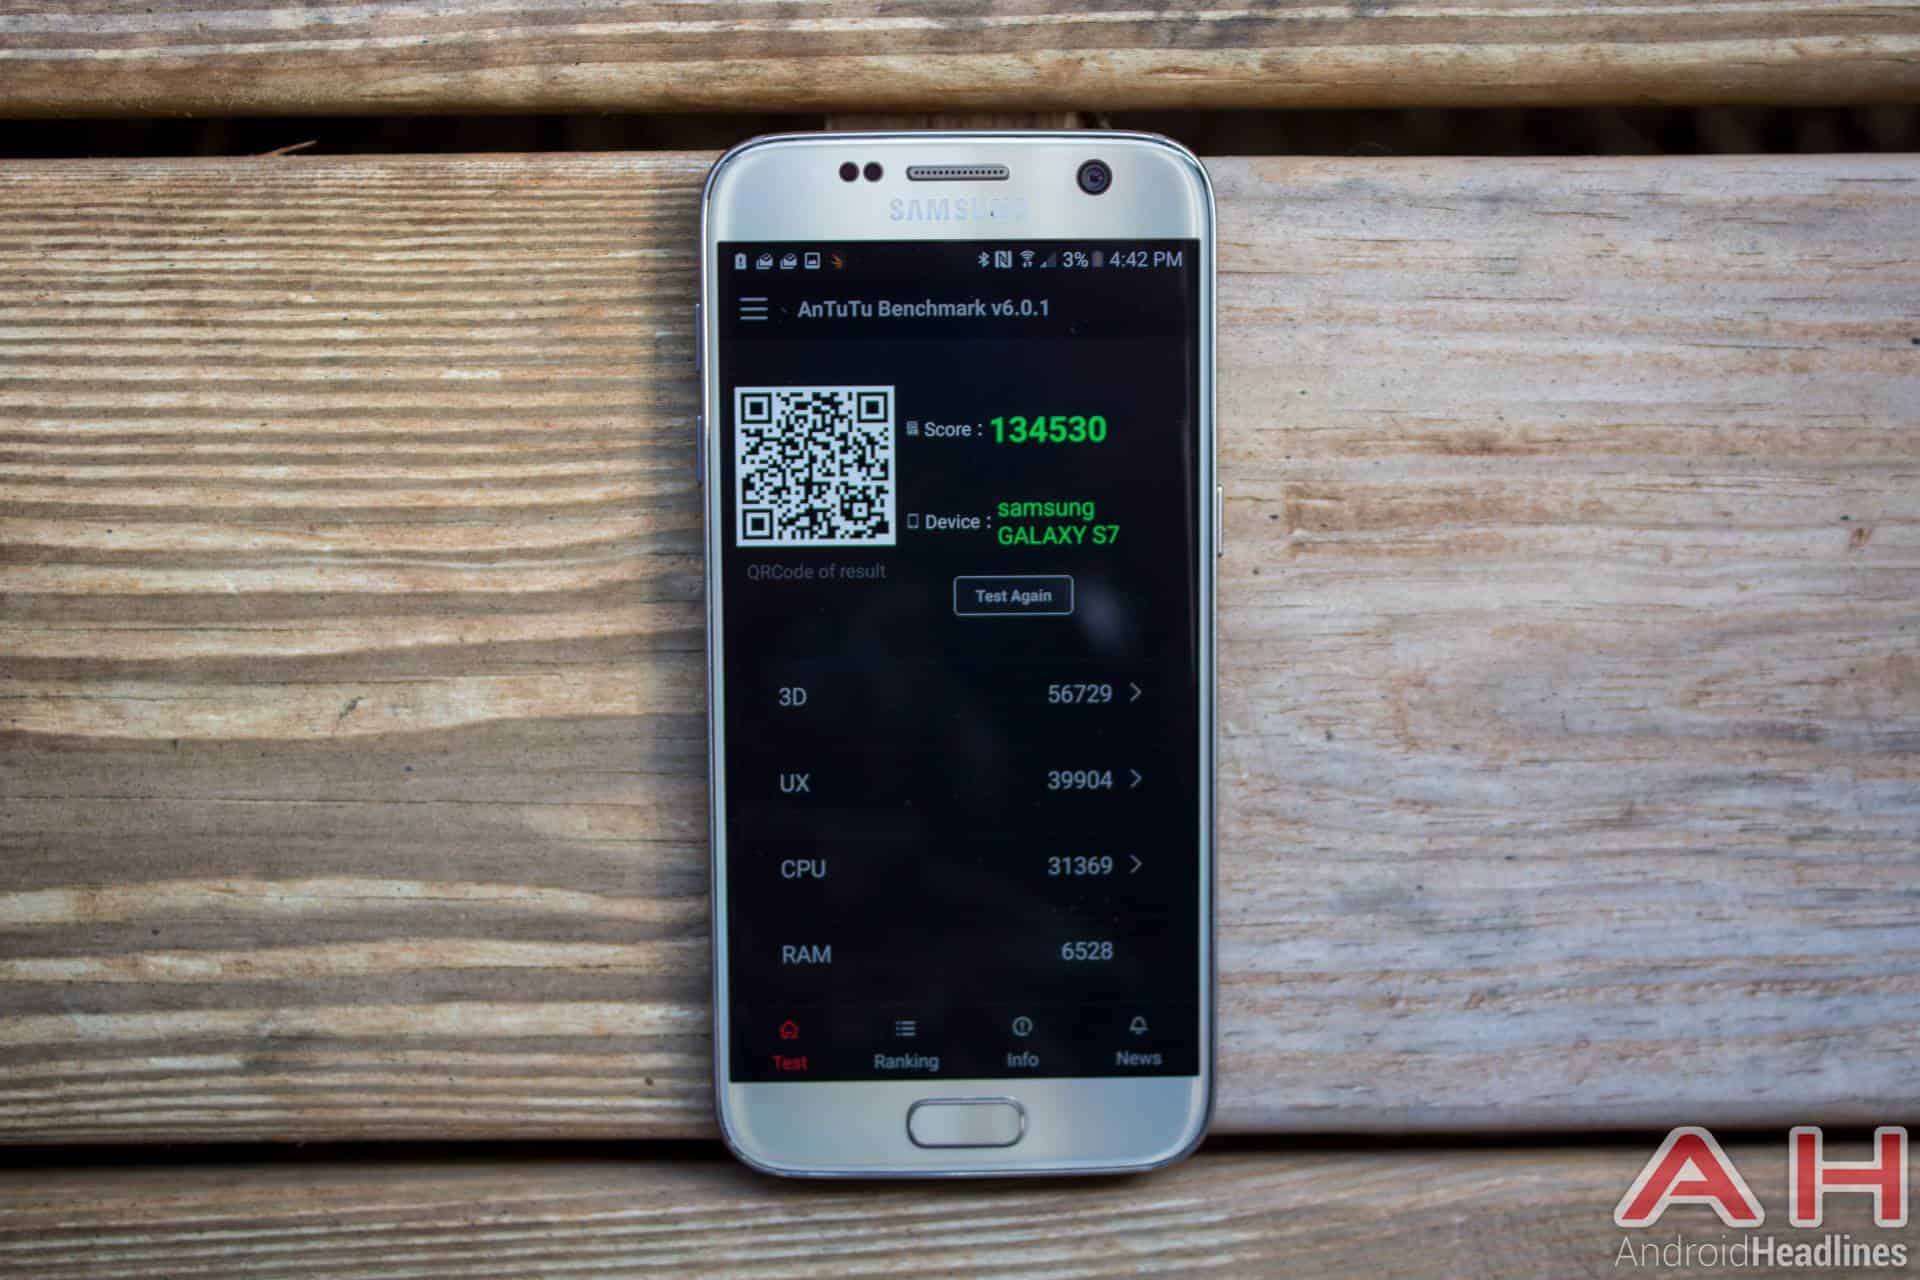 Samsung-Galaxy-S7-Gold-AH-NS-benchmarks